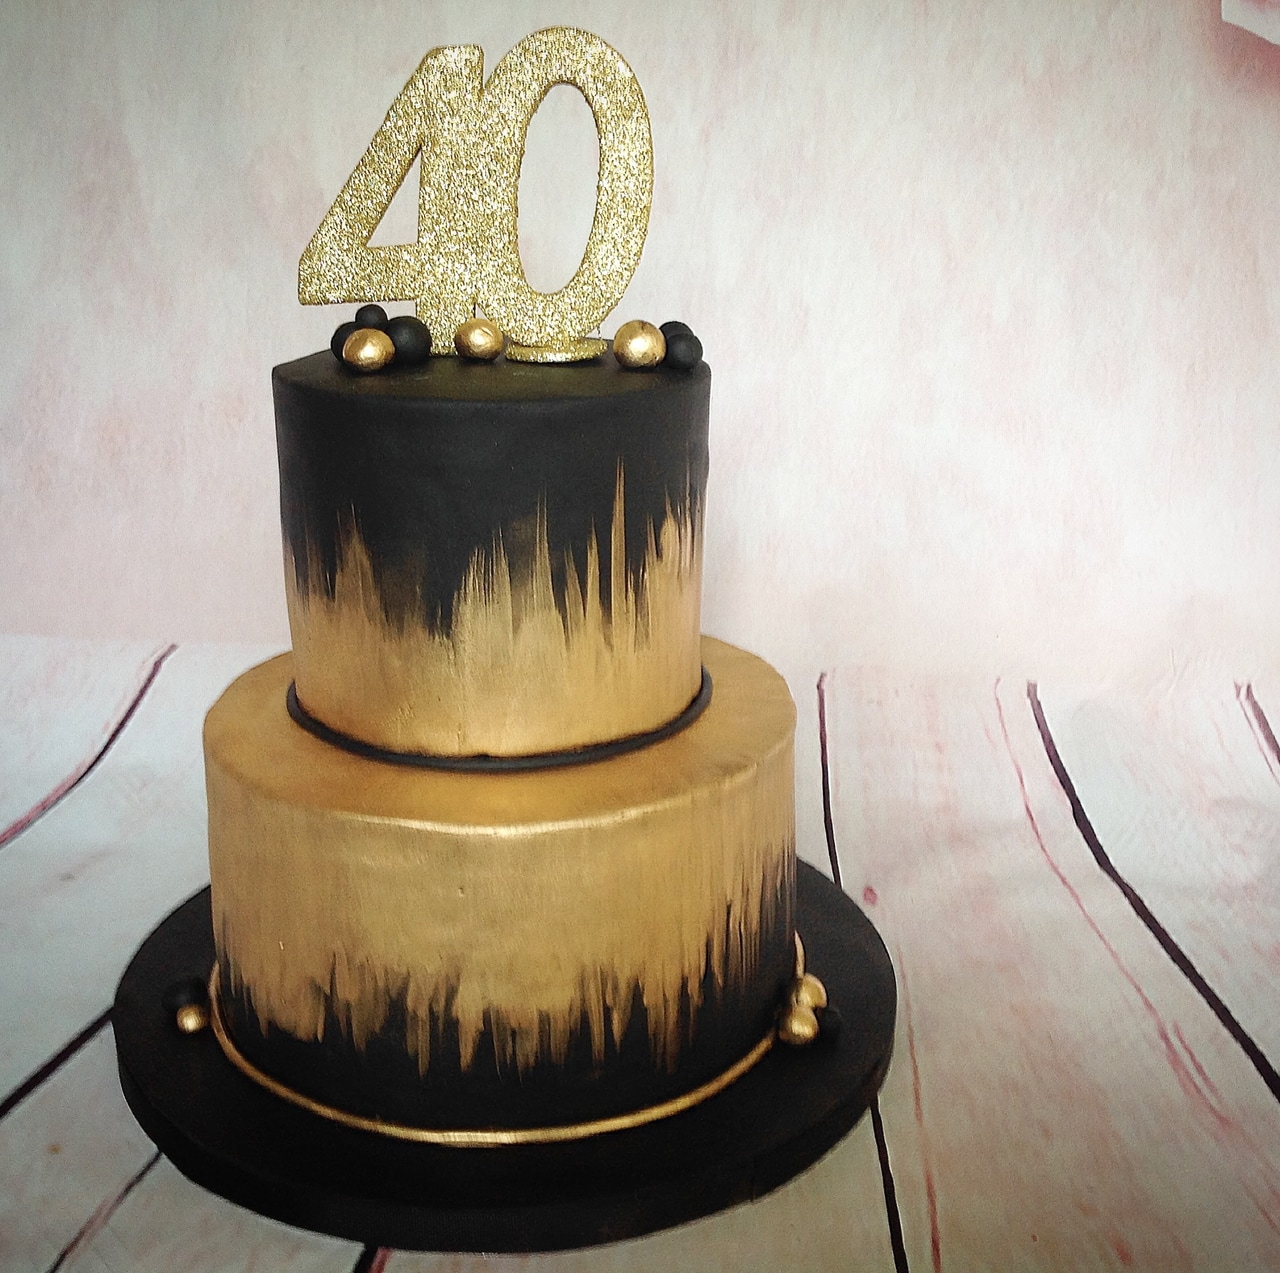 Admirable Gold And Black 40Th Birthday Cake On We Heart It Funny Birthday Cards Online Inifofree Goldxyz